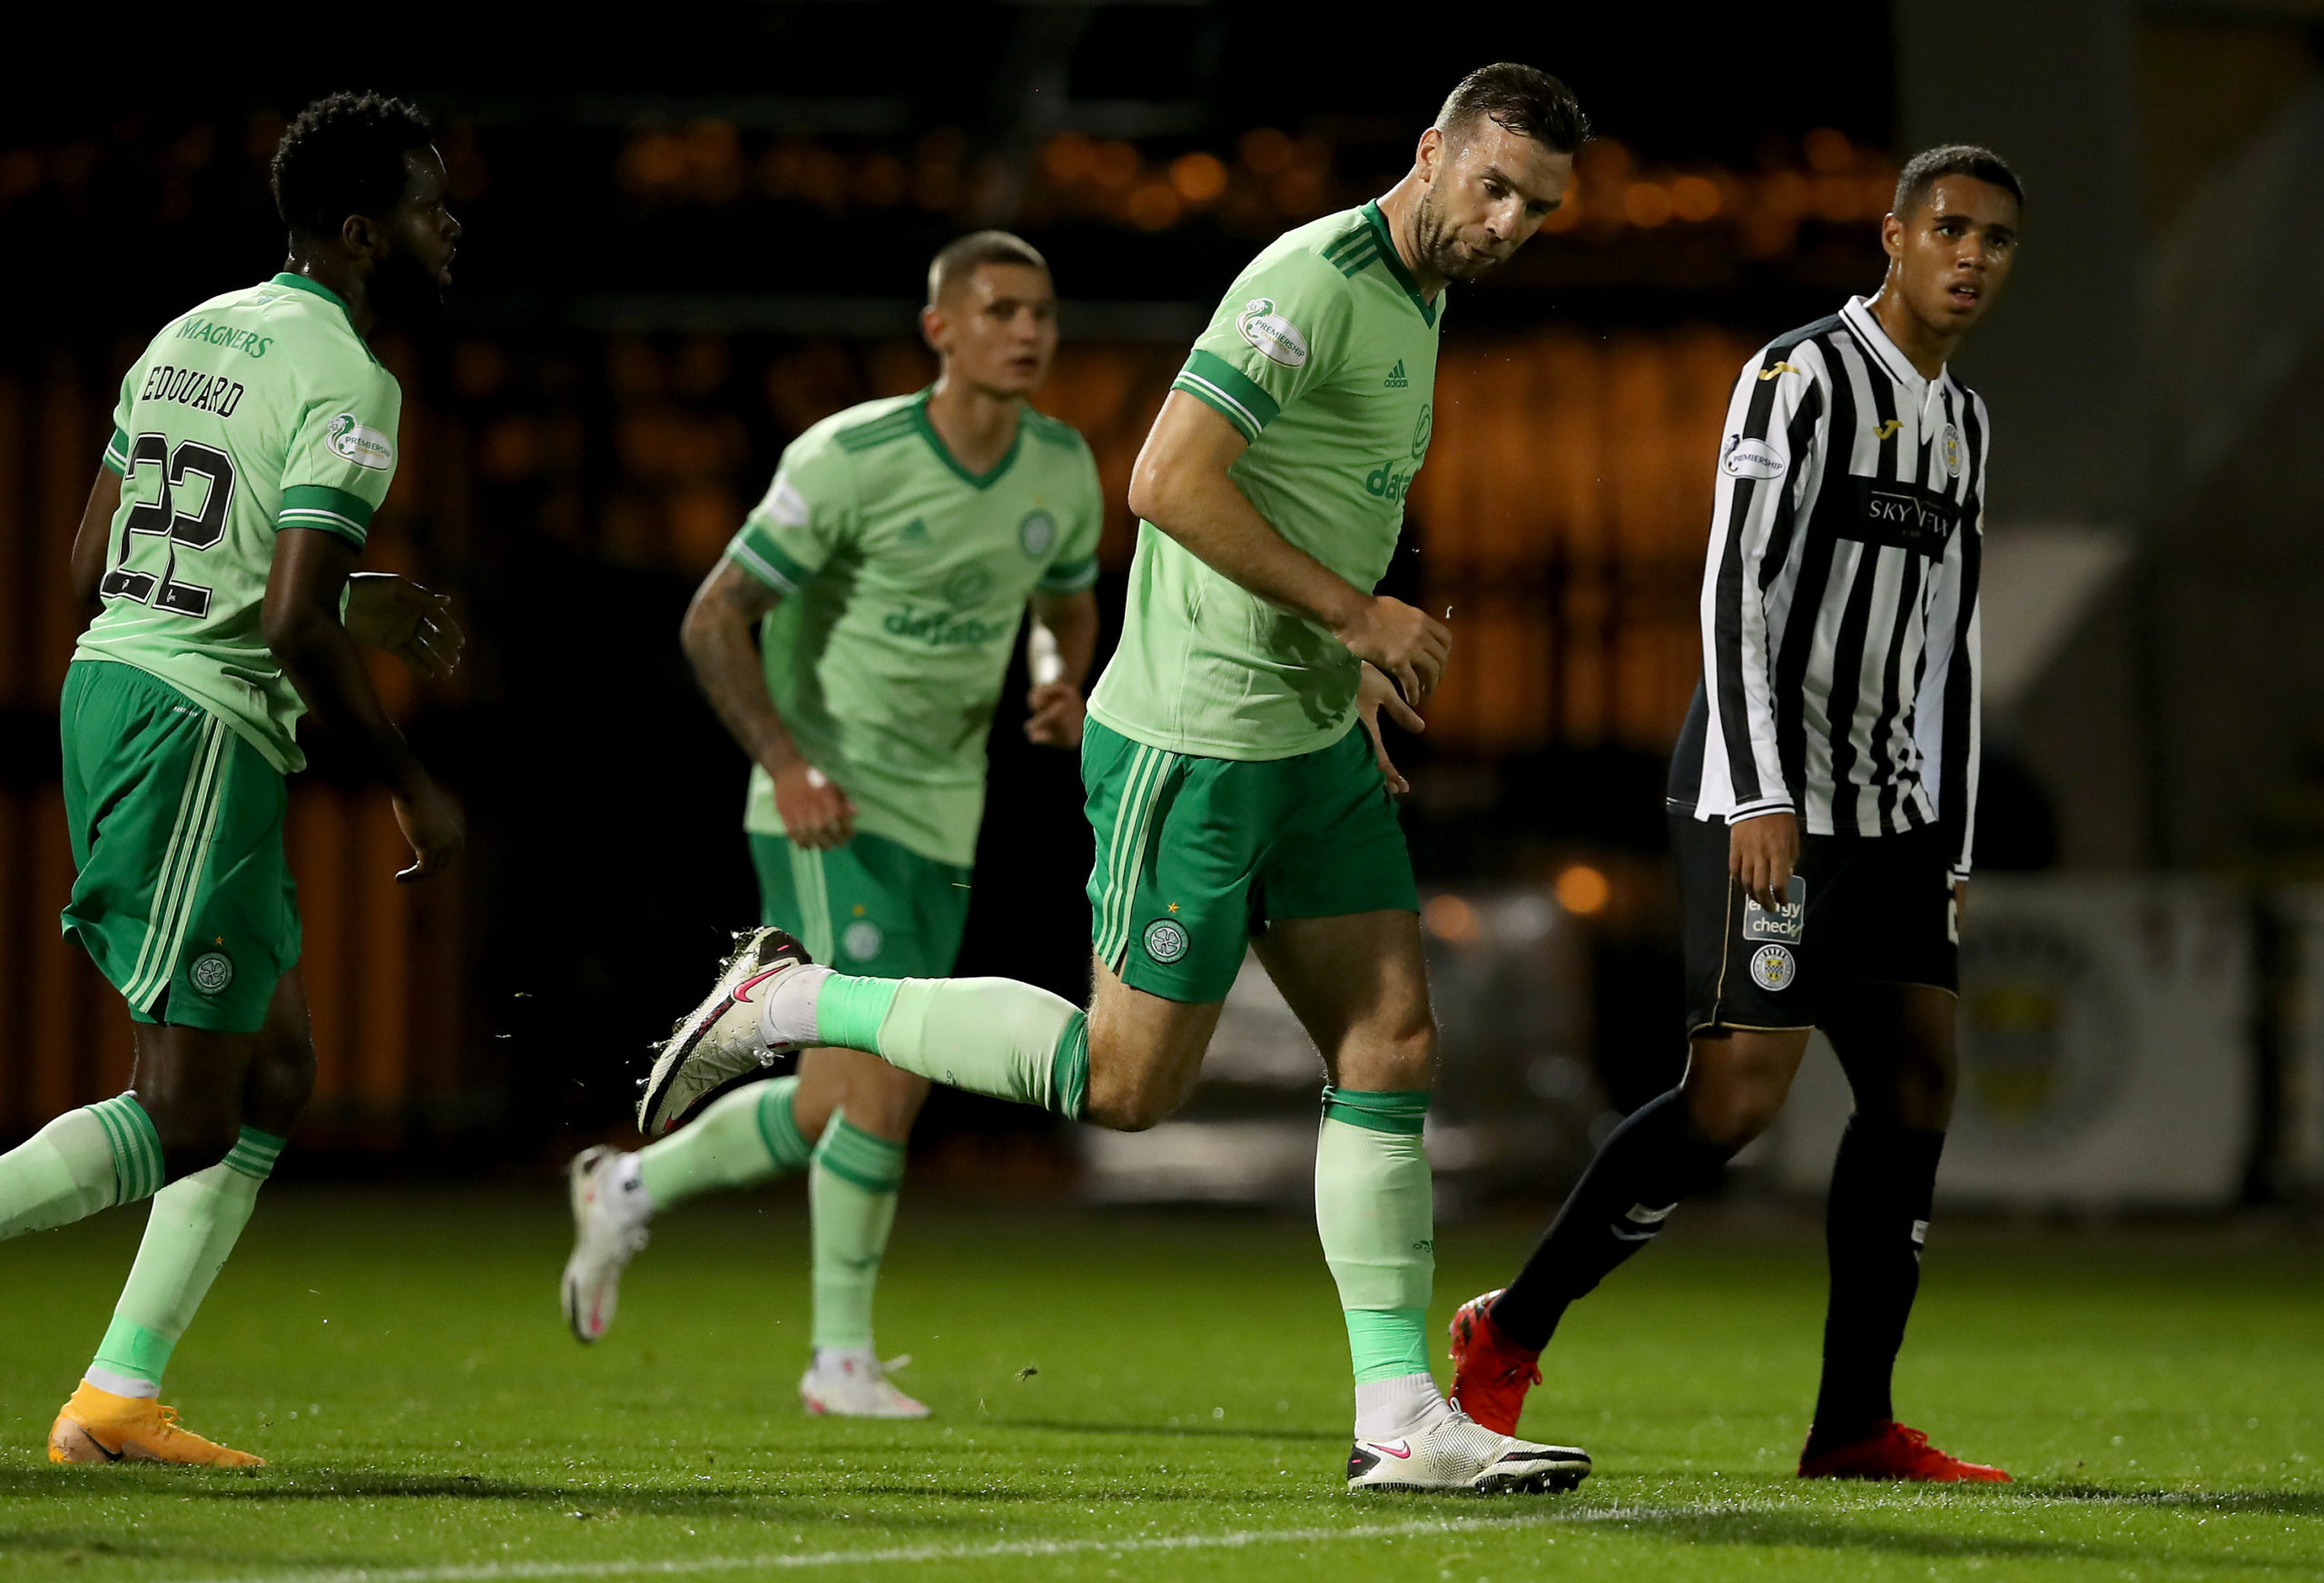 Shane Duffy after scoring for Celtic against St Mirren